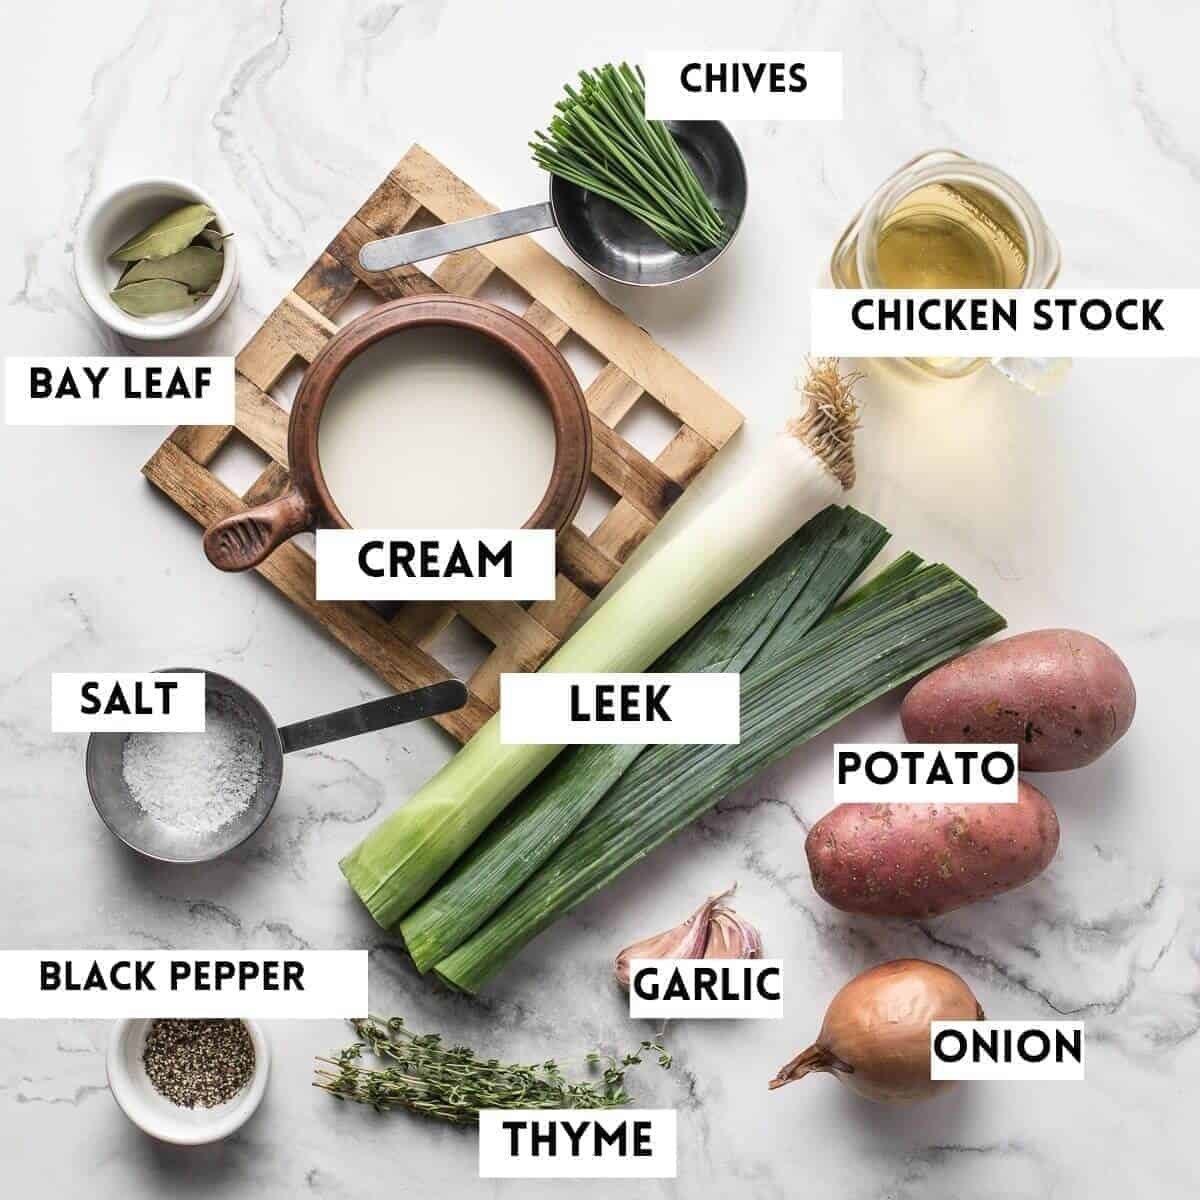 ingredients needed for this soup recipe